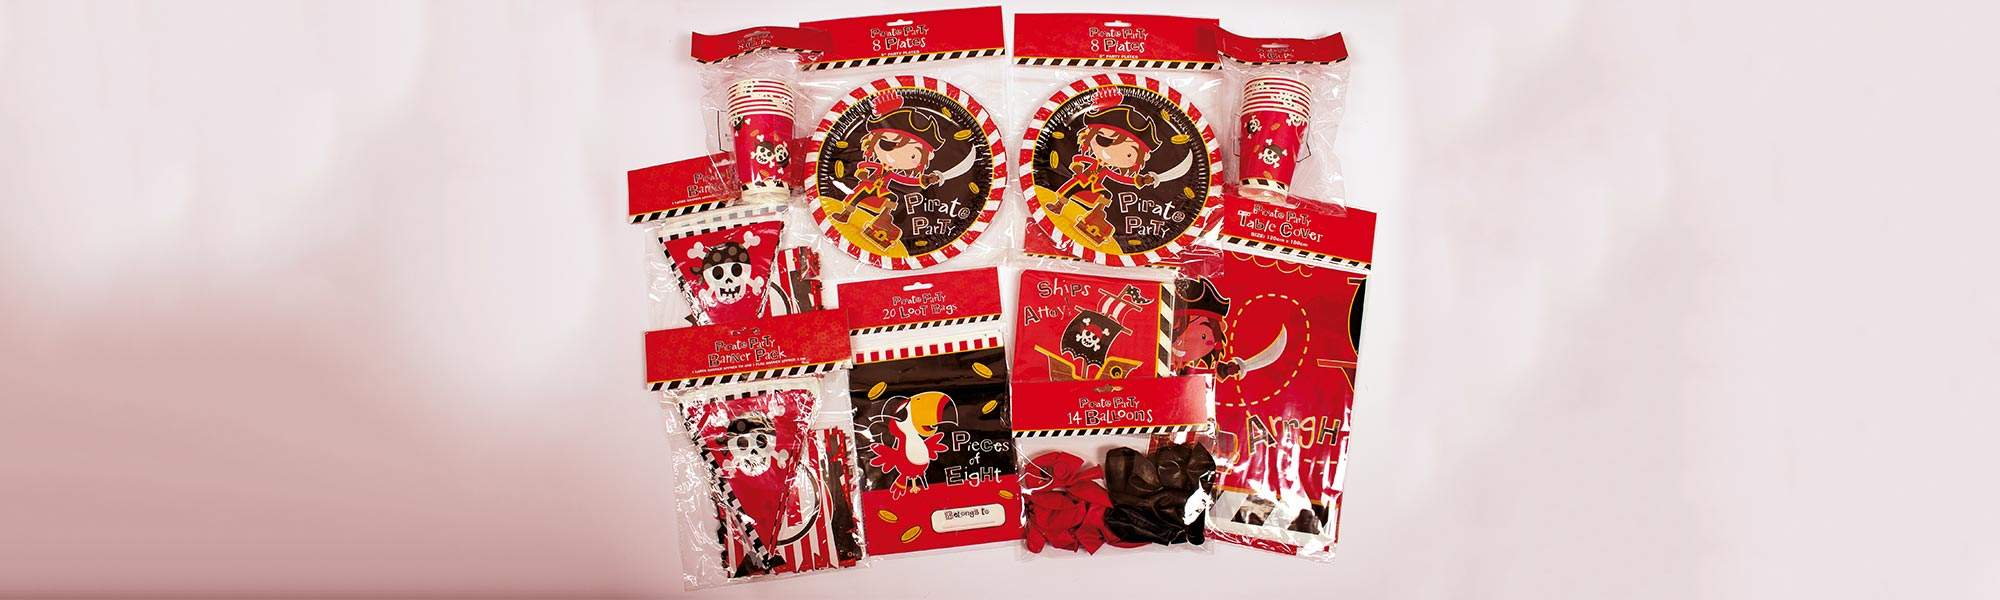 Little Bird Pirate Party Pack, 75% off